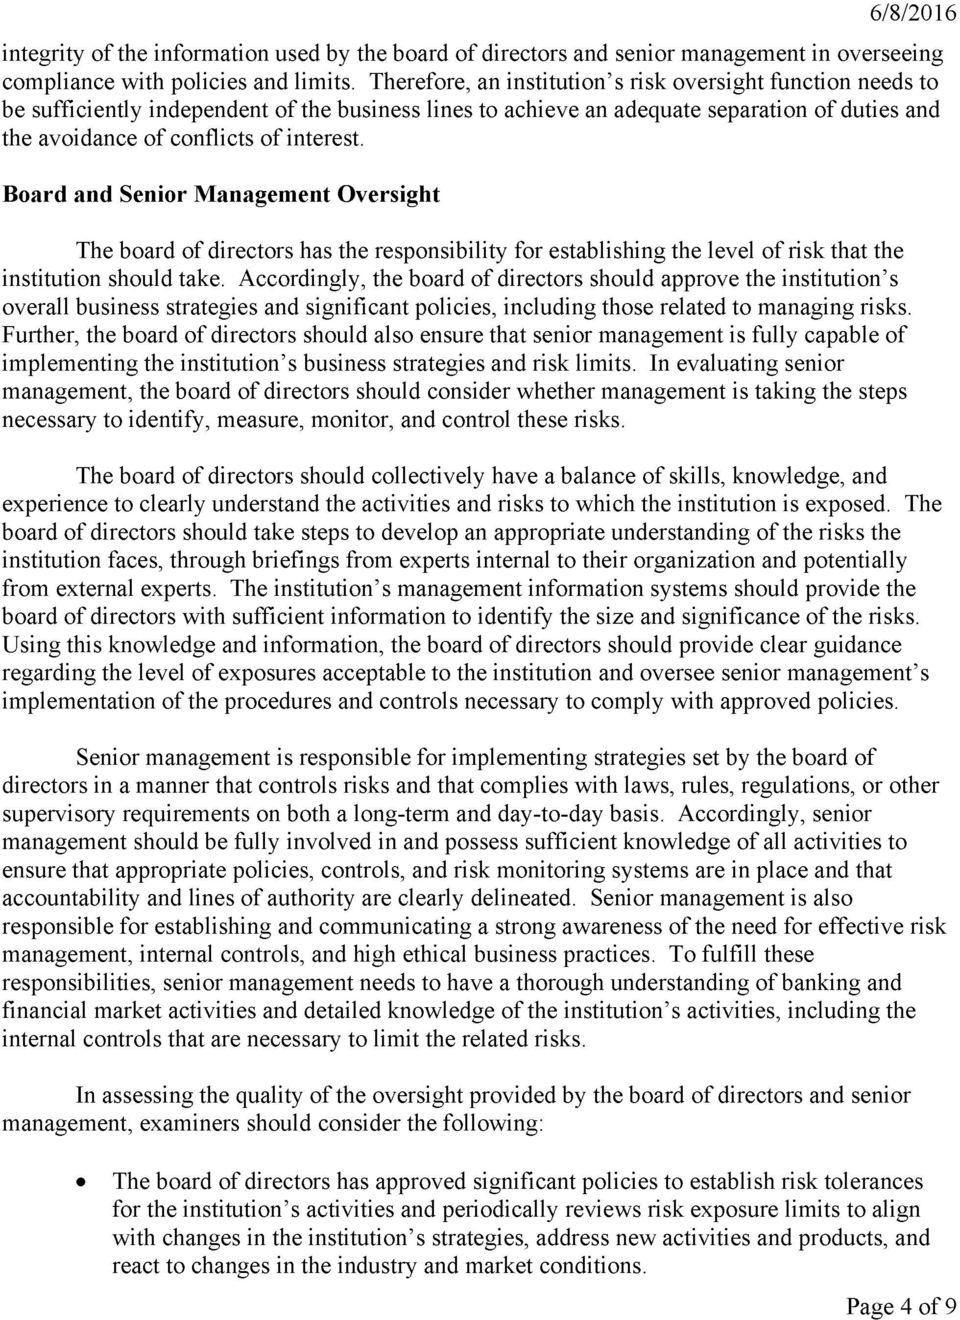 Board and Senior Management Oversight The board of directors has the responsibility for establishing the level of risk that the institution should take.